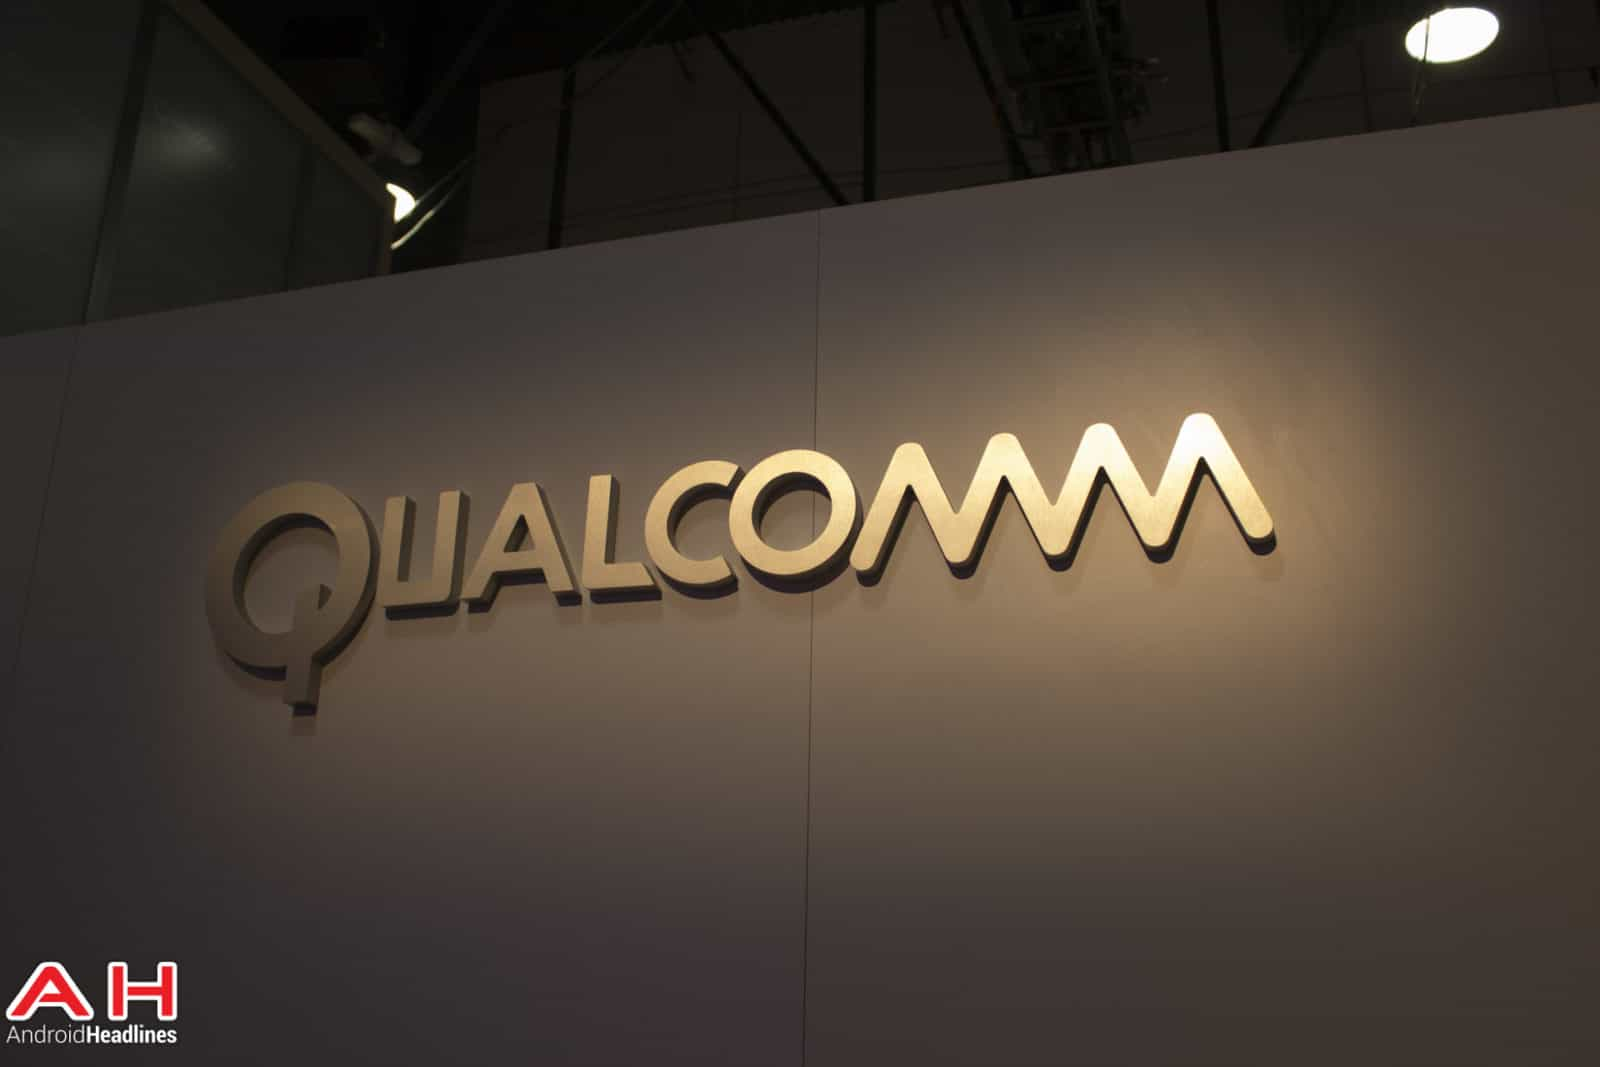 Qualcomm-Logo-AH-1